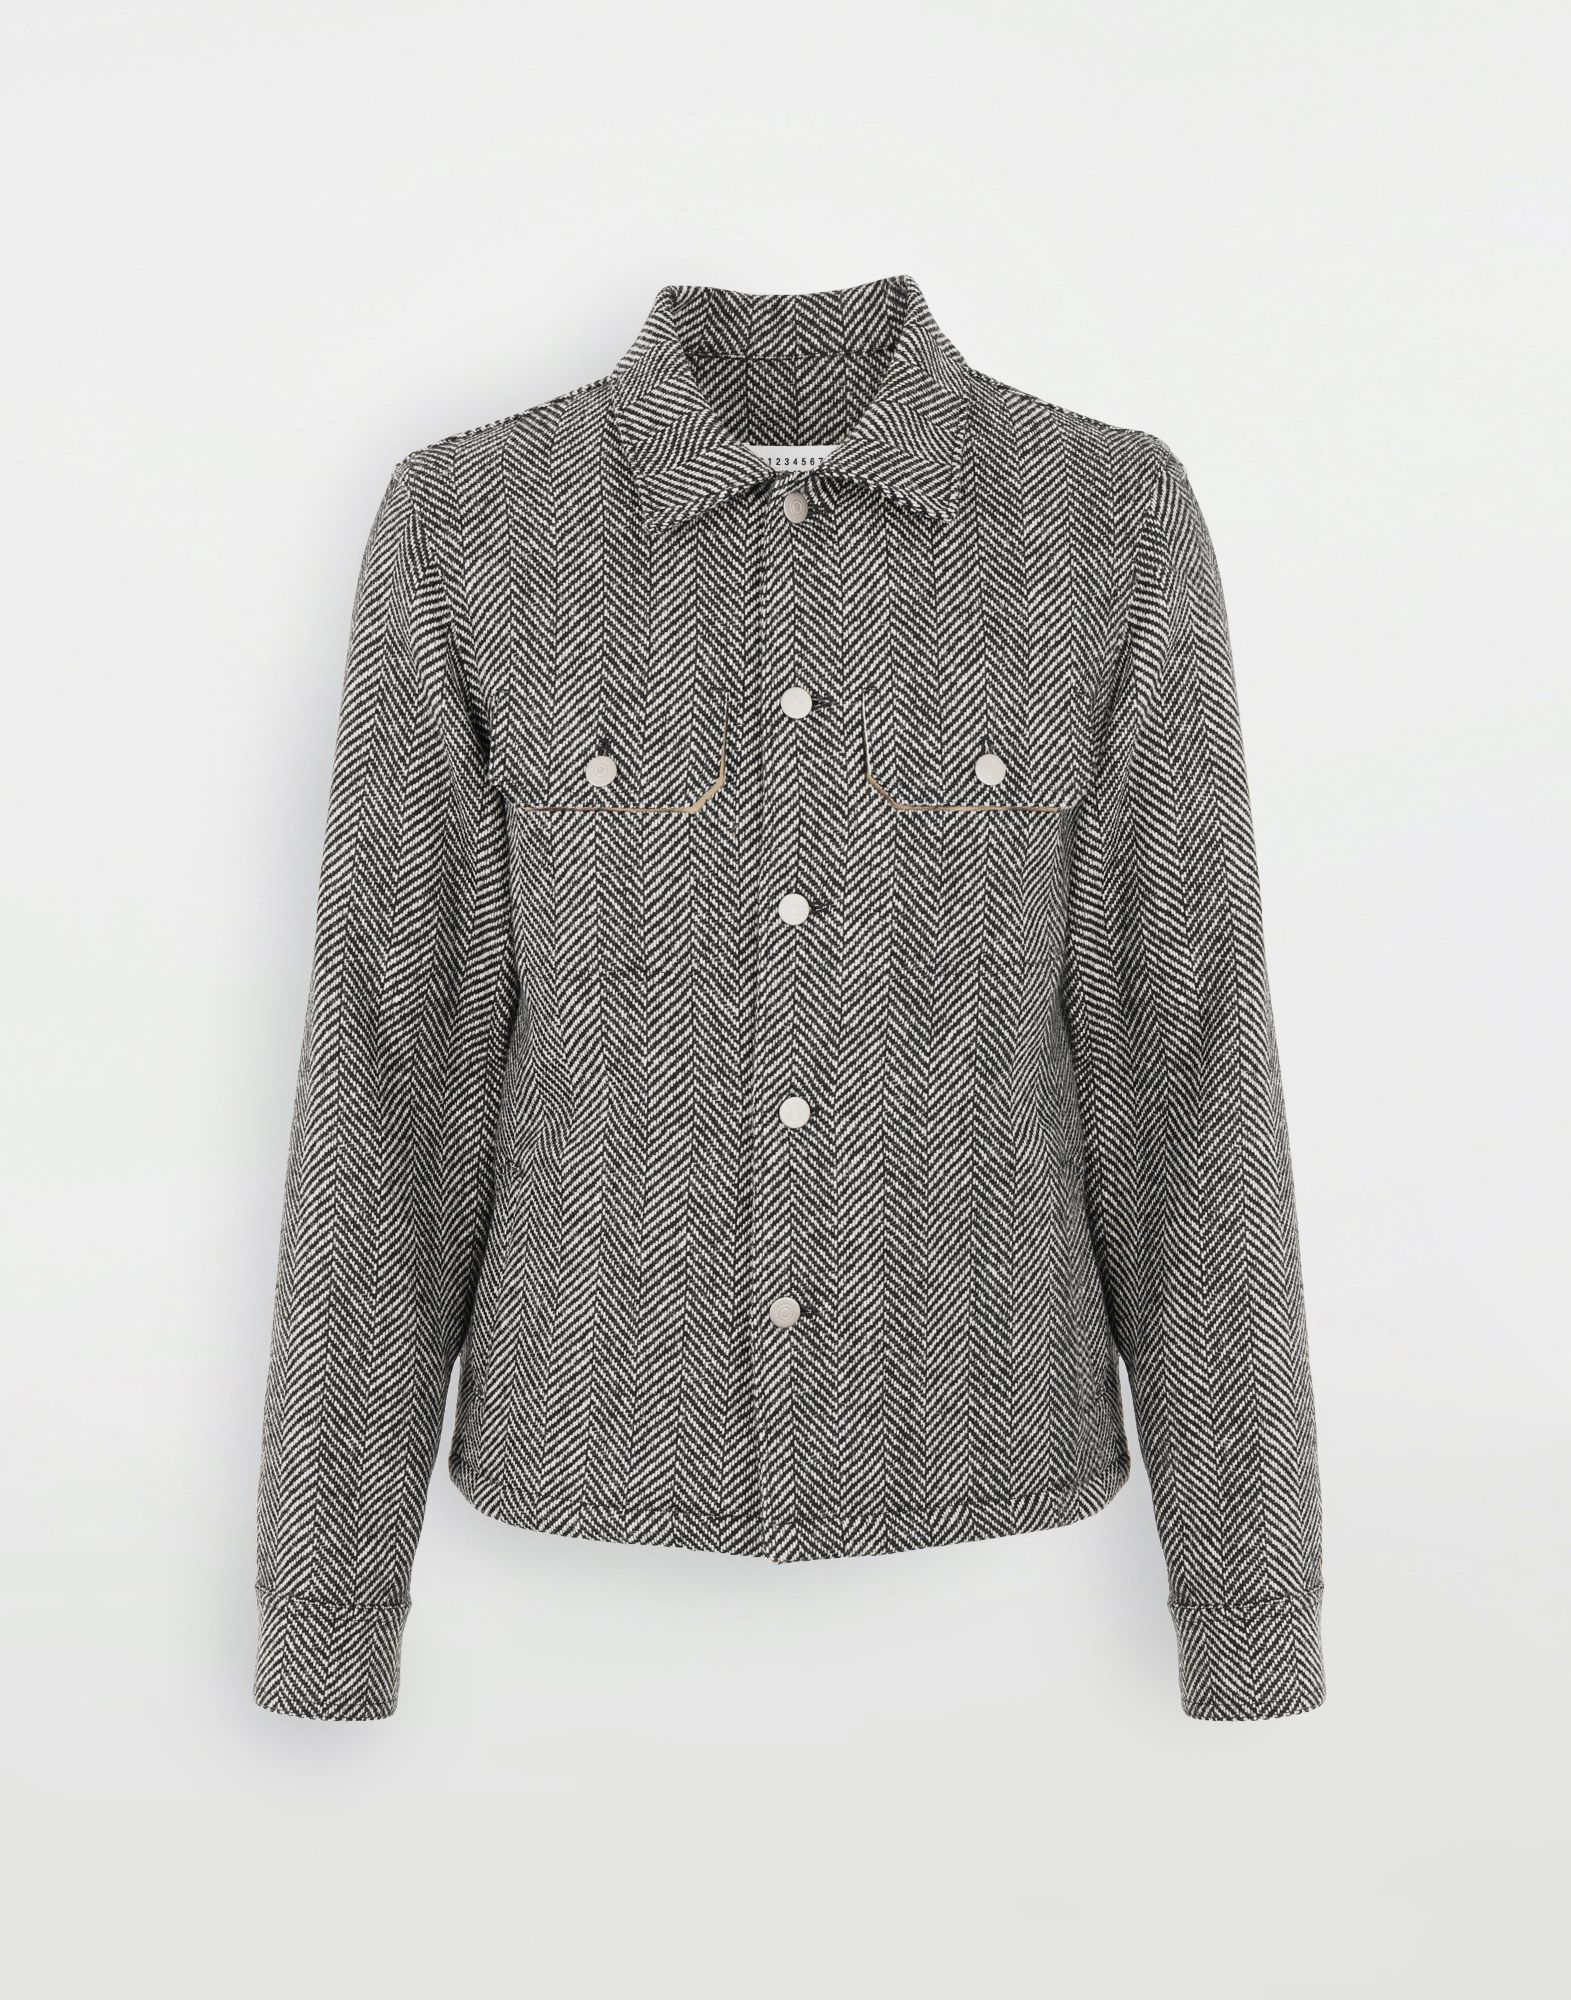 MAISON MARGIELA Décortiqué herringbone jacket Light jacket Man f